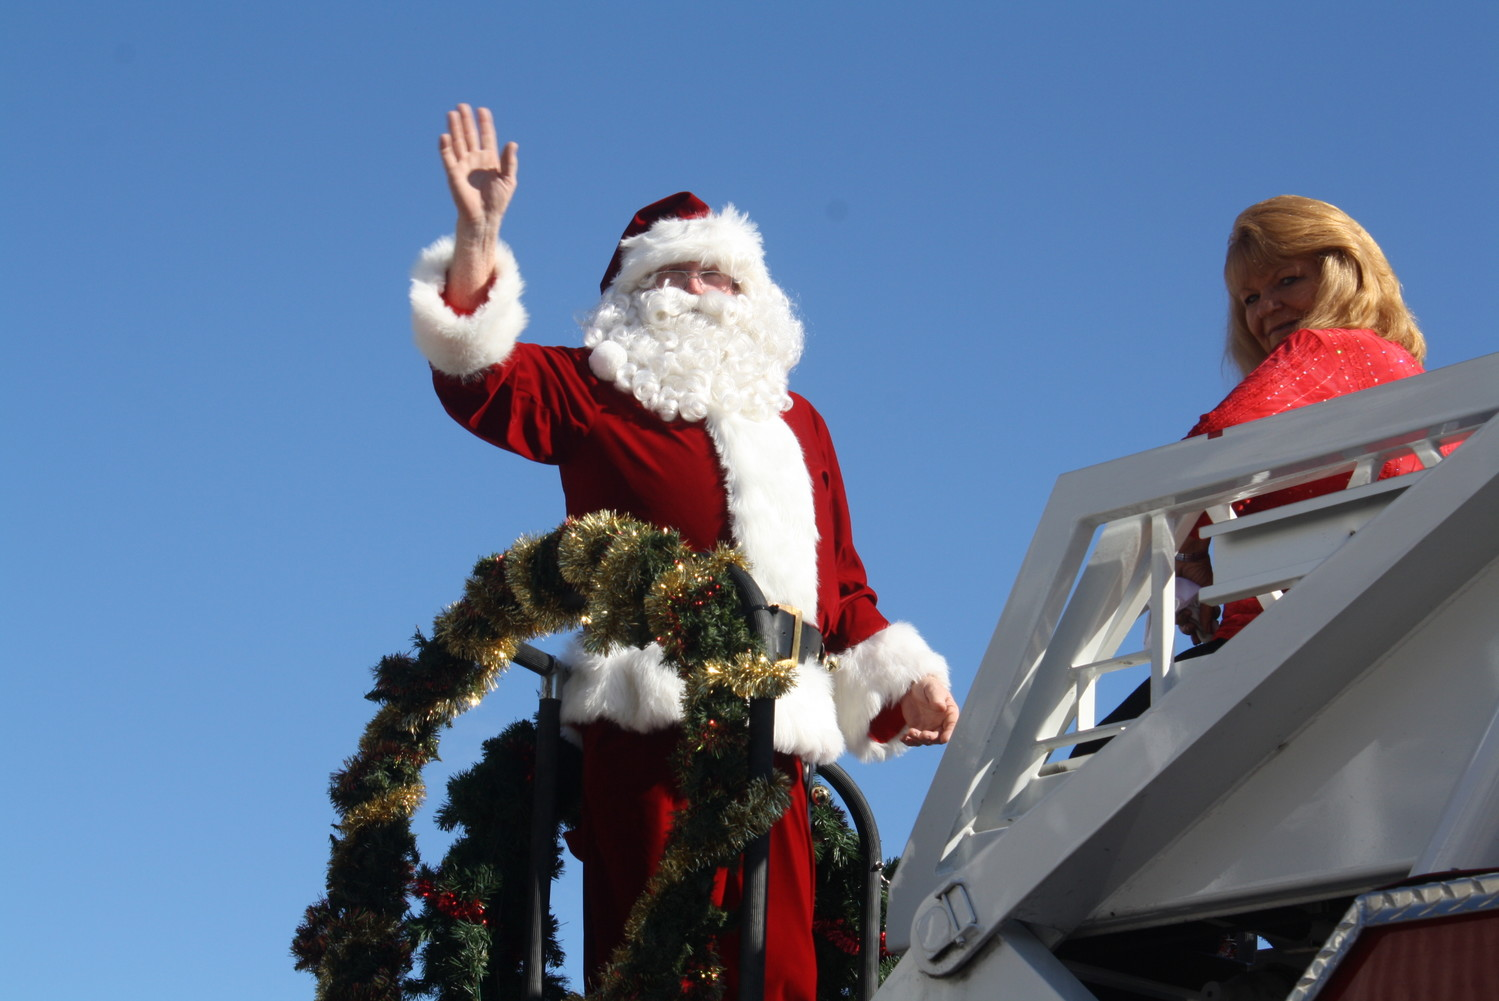 Santa Claus greets parade attendees as the last attraction of the annual holiday event.